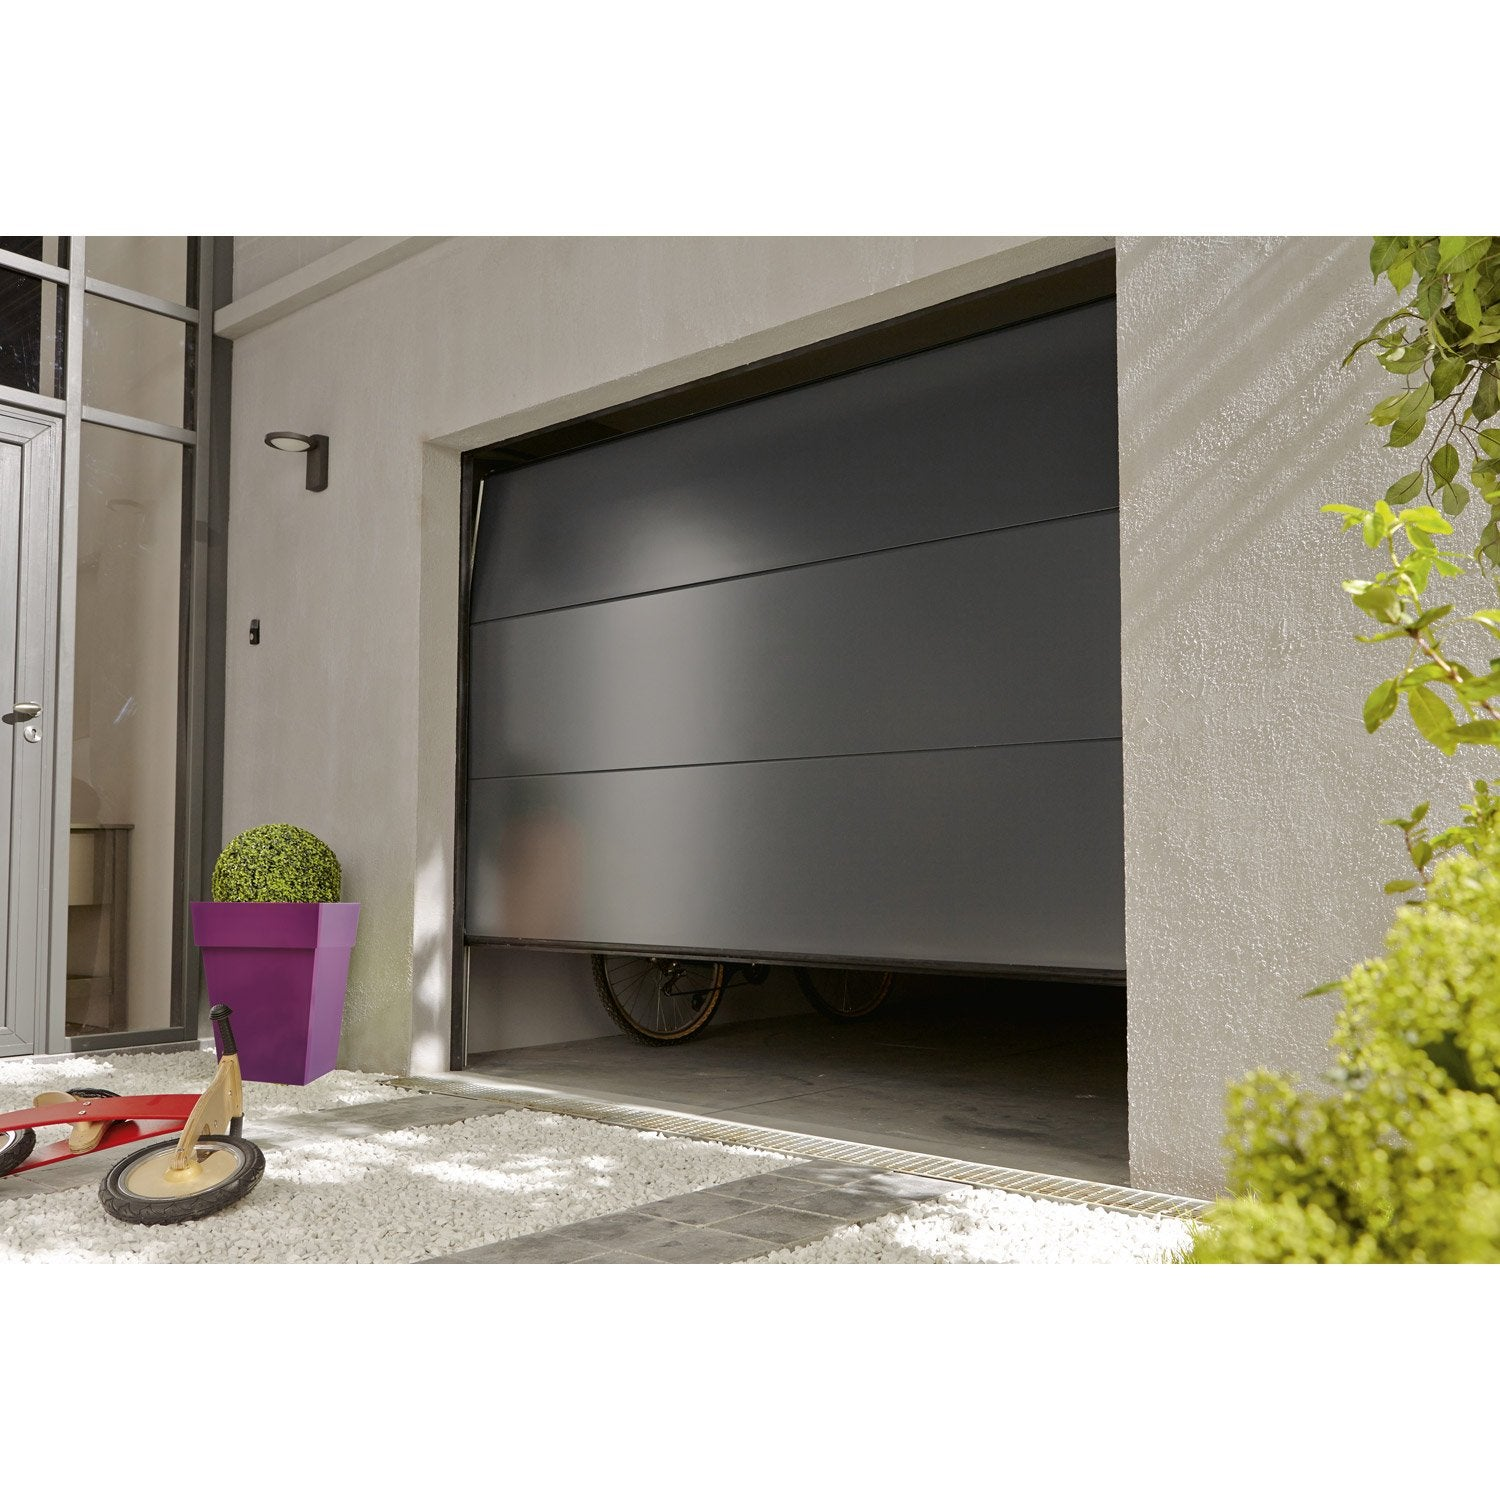 Porte de garage sectionelle palma acier gris anthracite for Portillon pvc gris anthracite